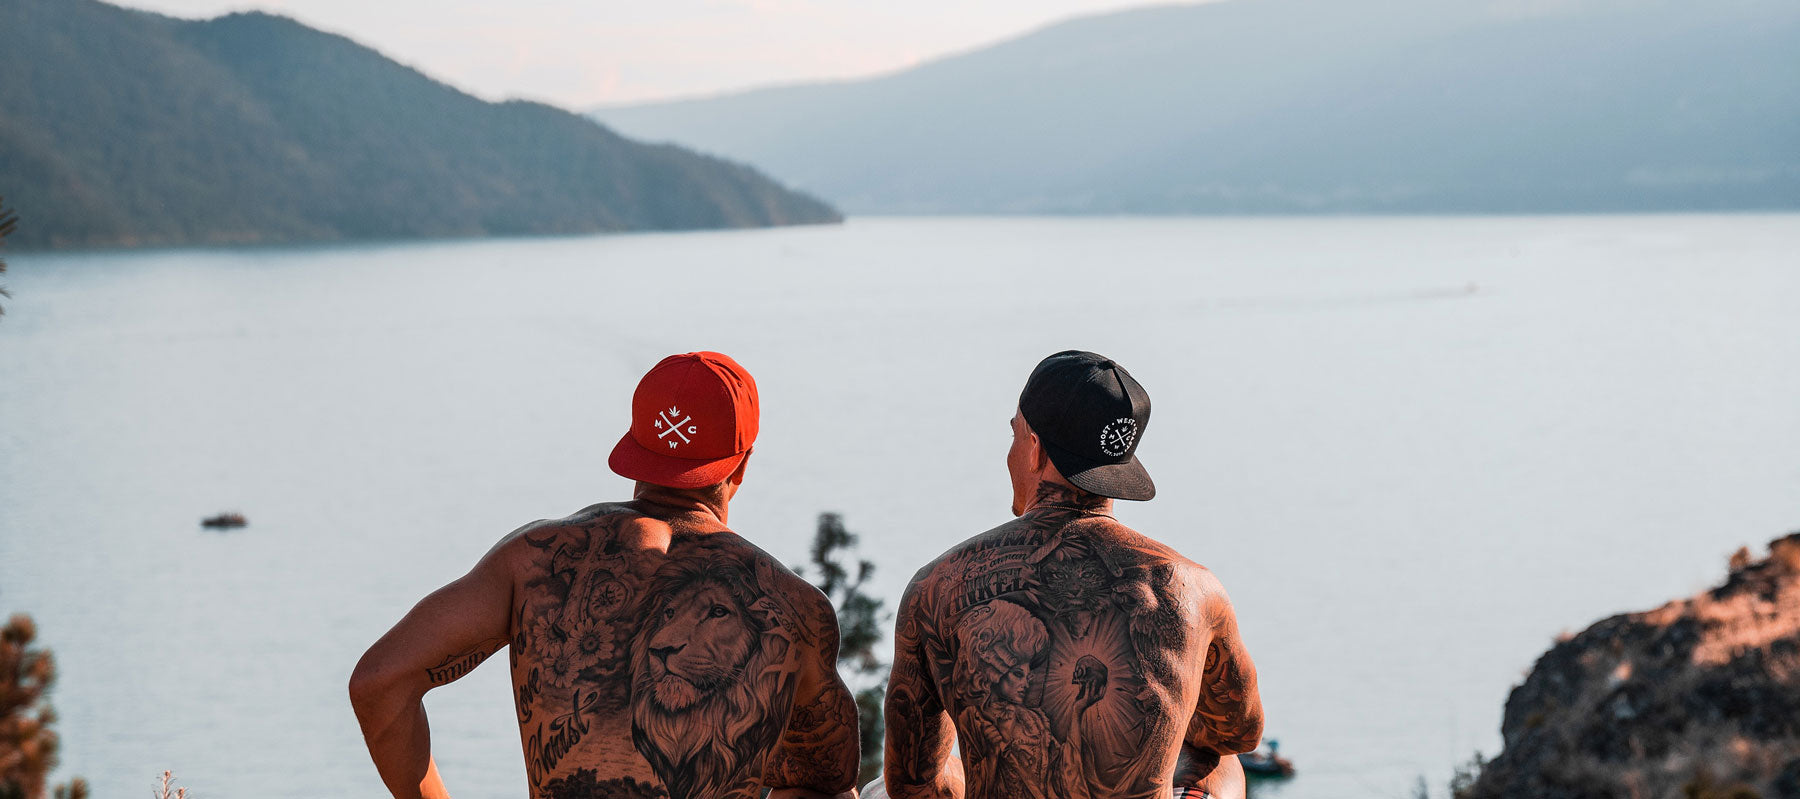 2 guys hanging out on the coast, wearing Most West Coast Snapback hats. One hat is red, the other hat is black.